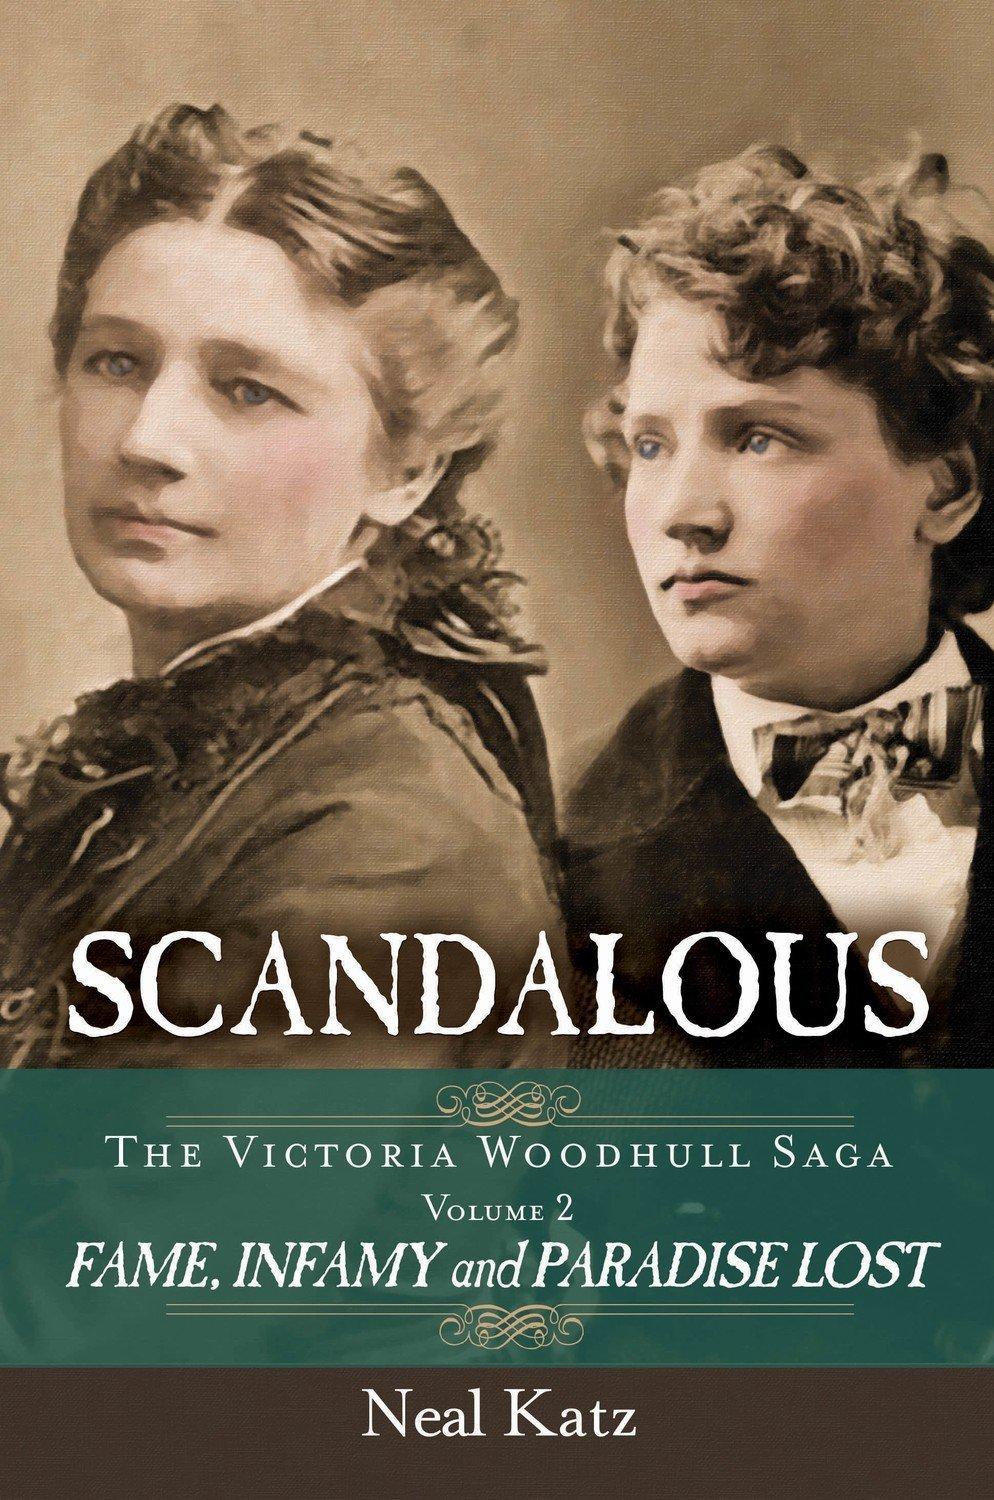 Scandalous, The Victoria Woodhull Saga, Vol. II: Fame, Infamy, and Paradise Lost - Historical